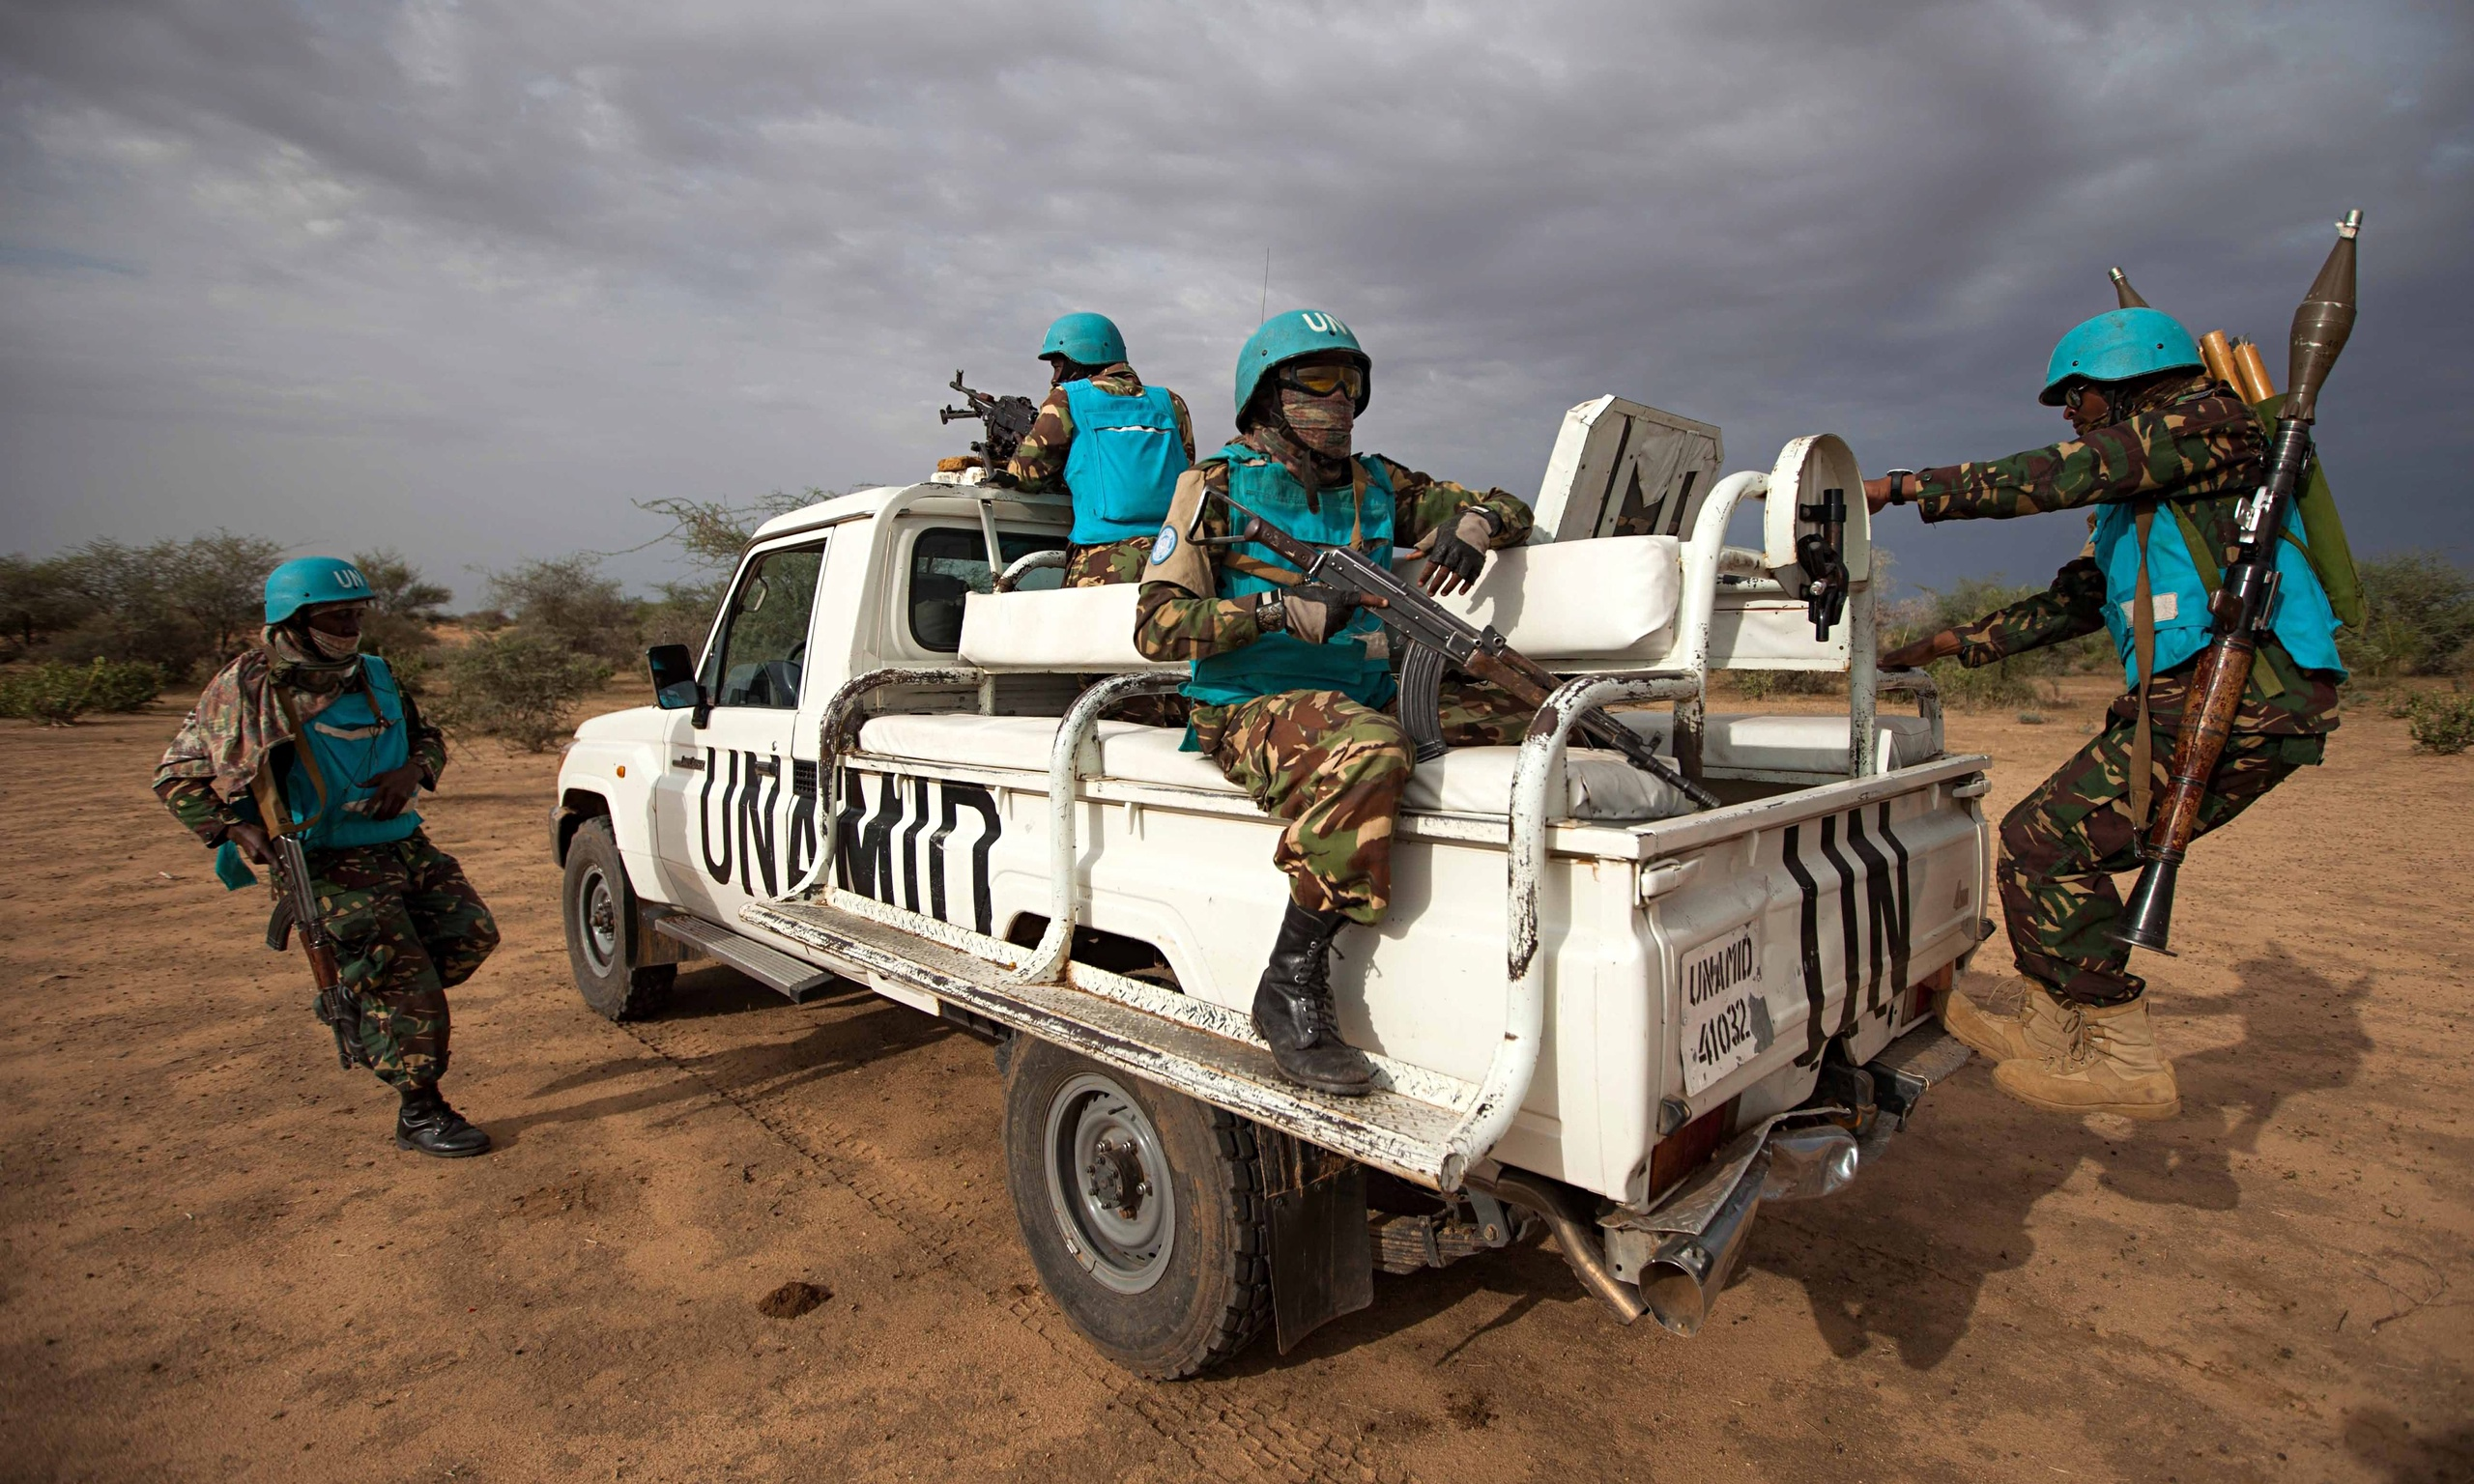 Aid workers find 'dire conditions' in Darfur town that had been off limits